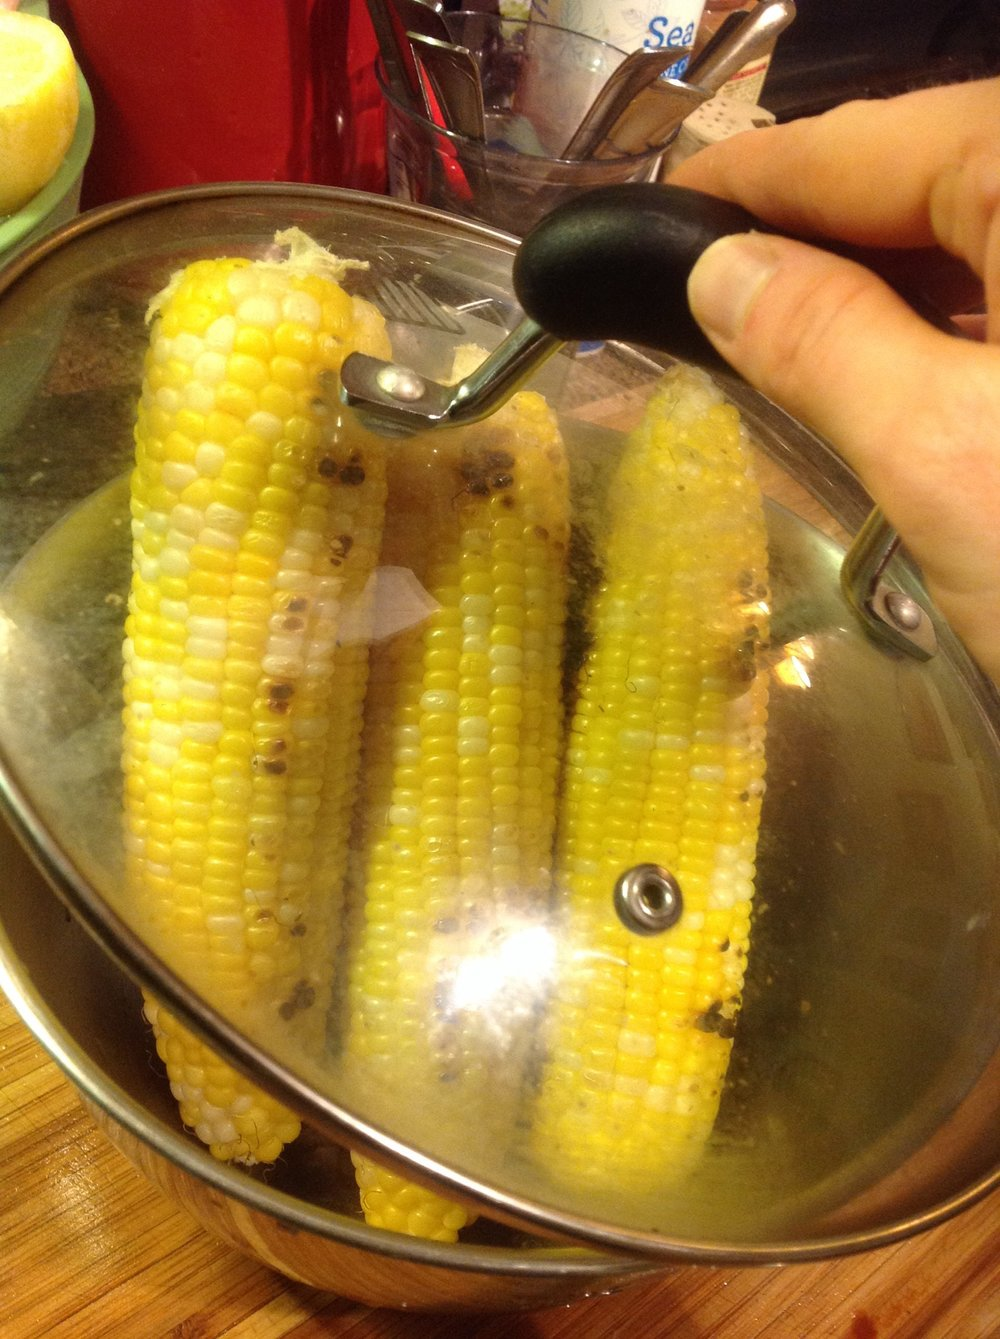 Chef's Plant-Based Tip:  After grilling the corn, loosely cover for a few minutes before cutting.  This will help steam any kernels that might still be a little raw, bringing out the natural sweetness and a slightly creamy texture